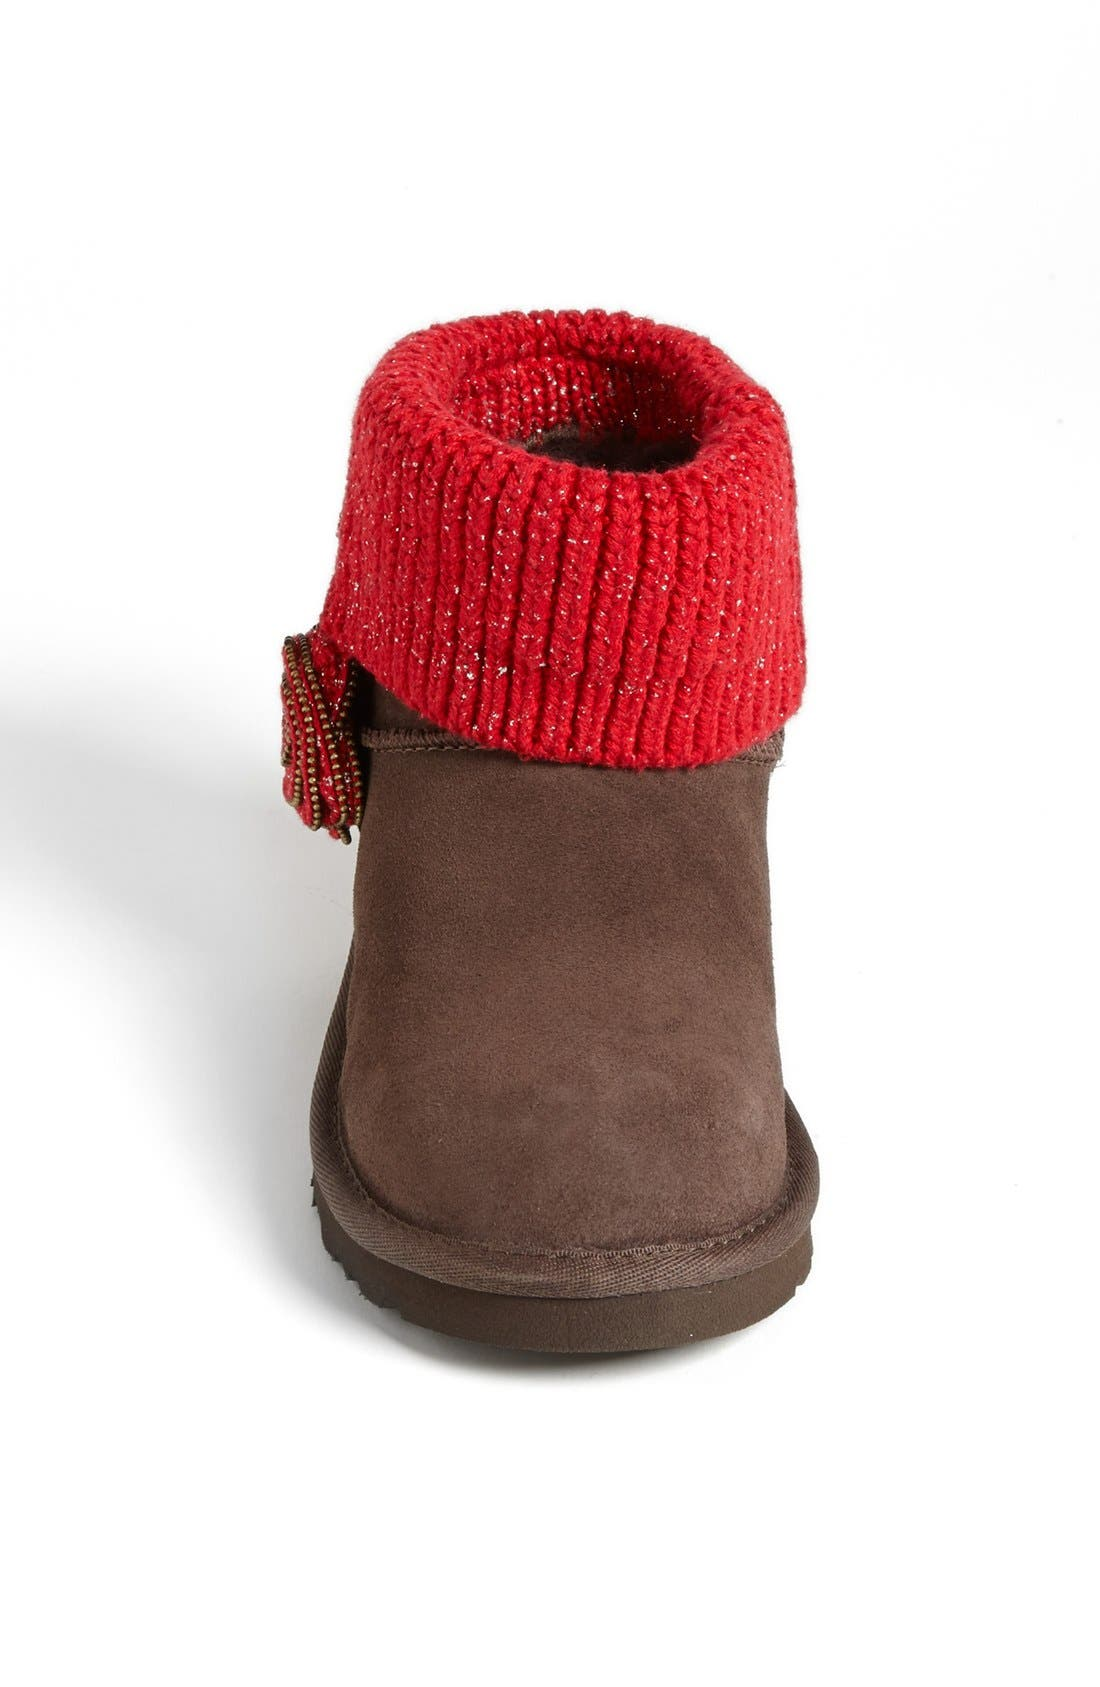 Australia 'Southern Belle' Boot,                             Alternate thumbnail 3, color,                             Chocolate